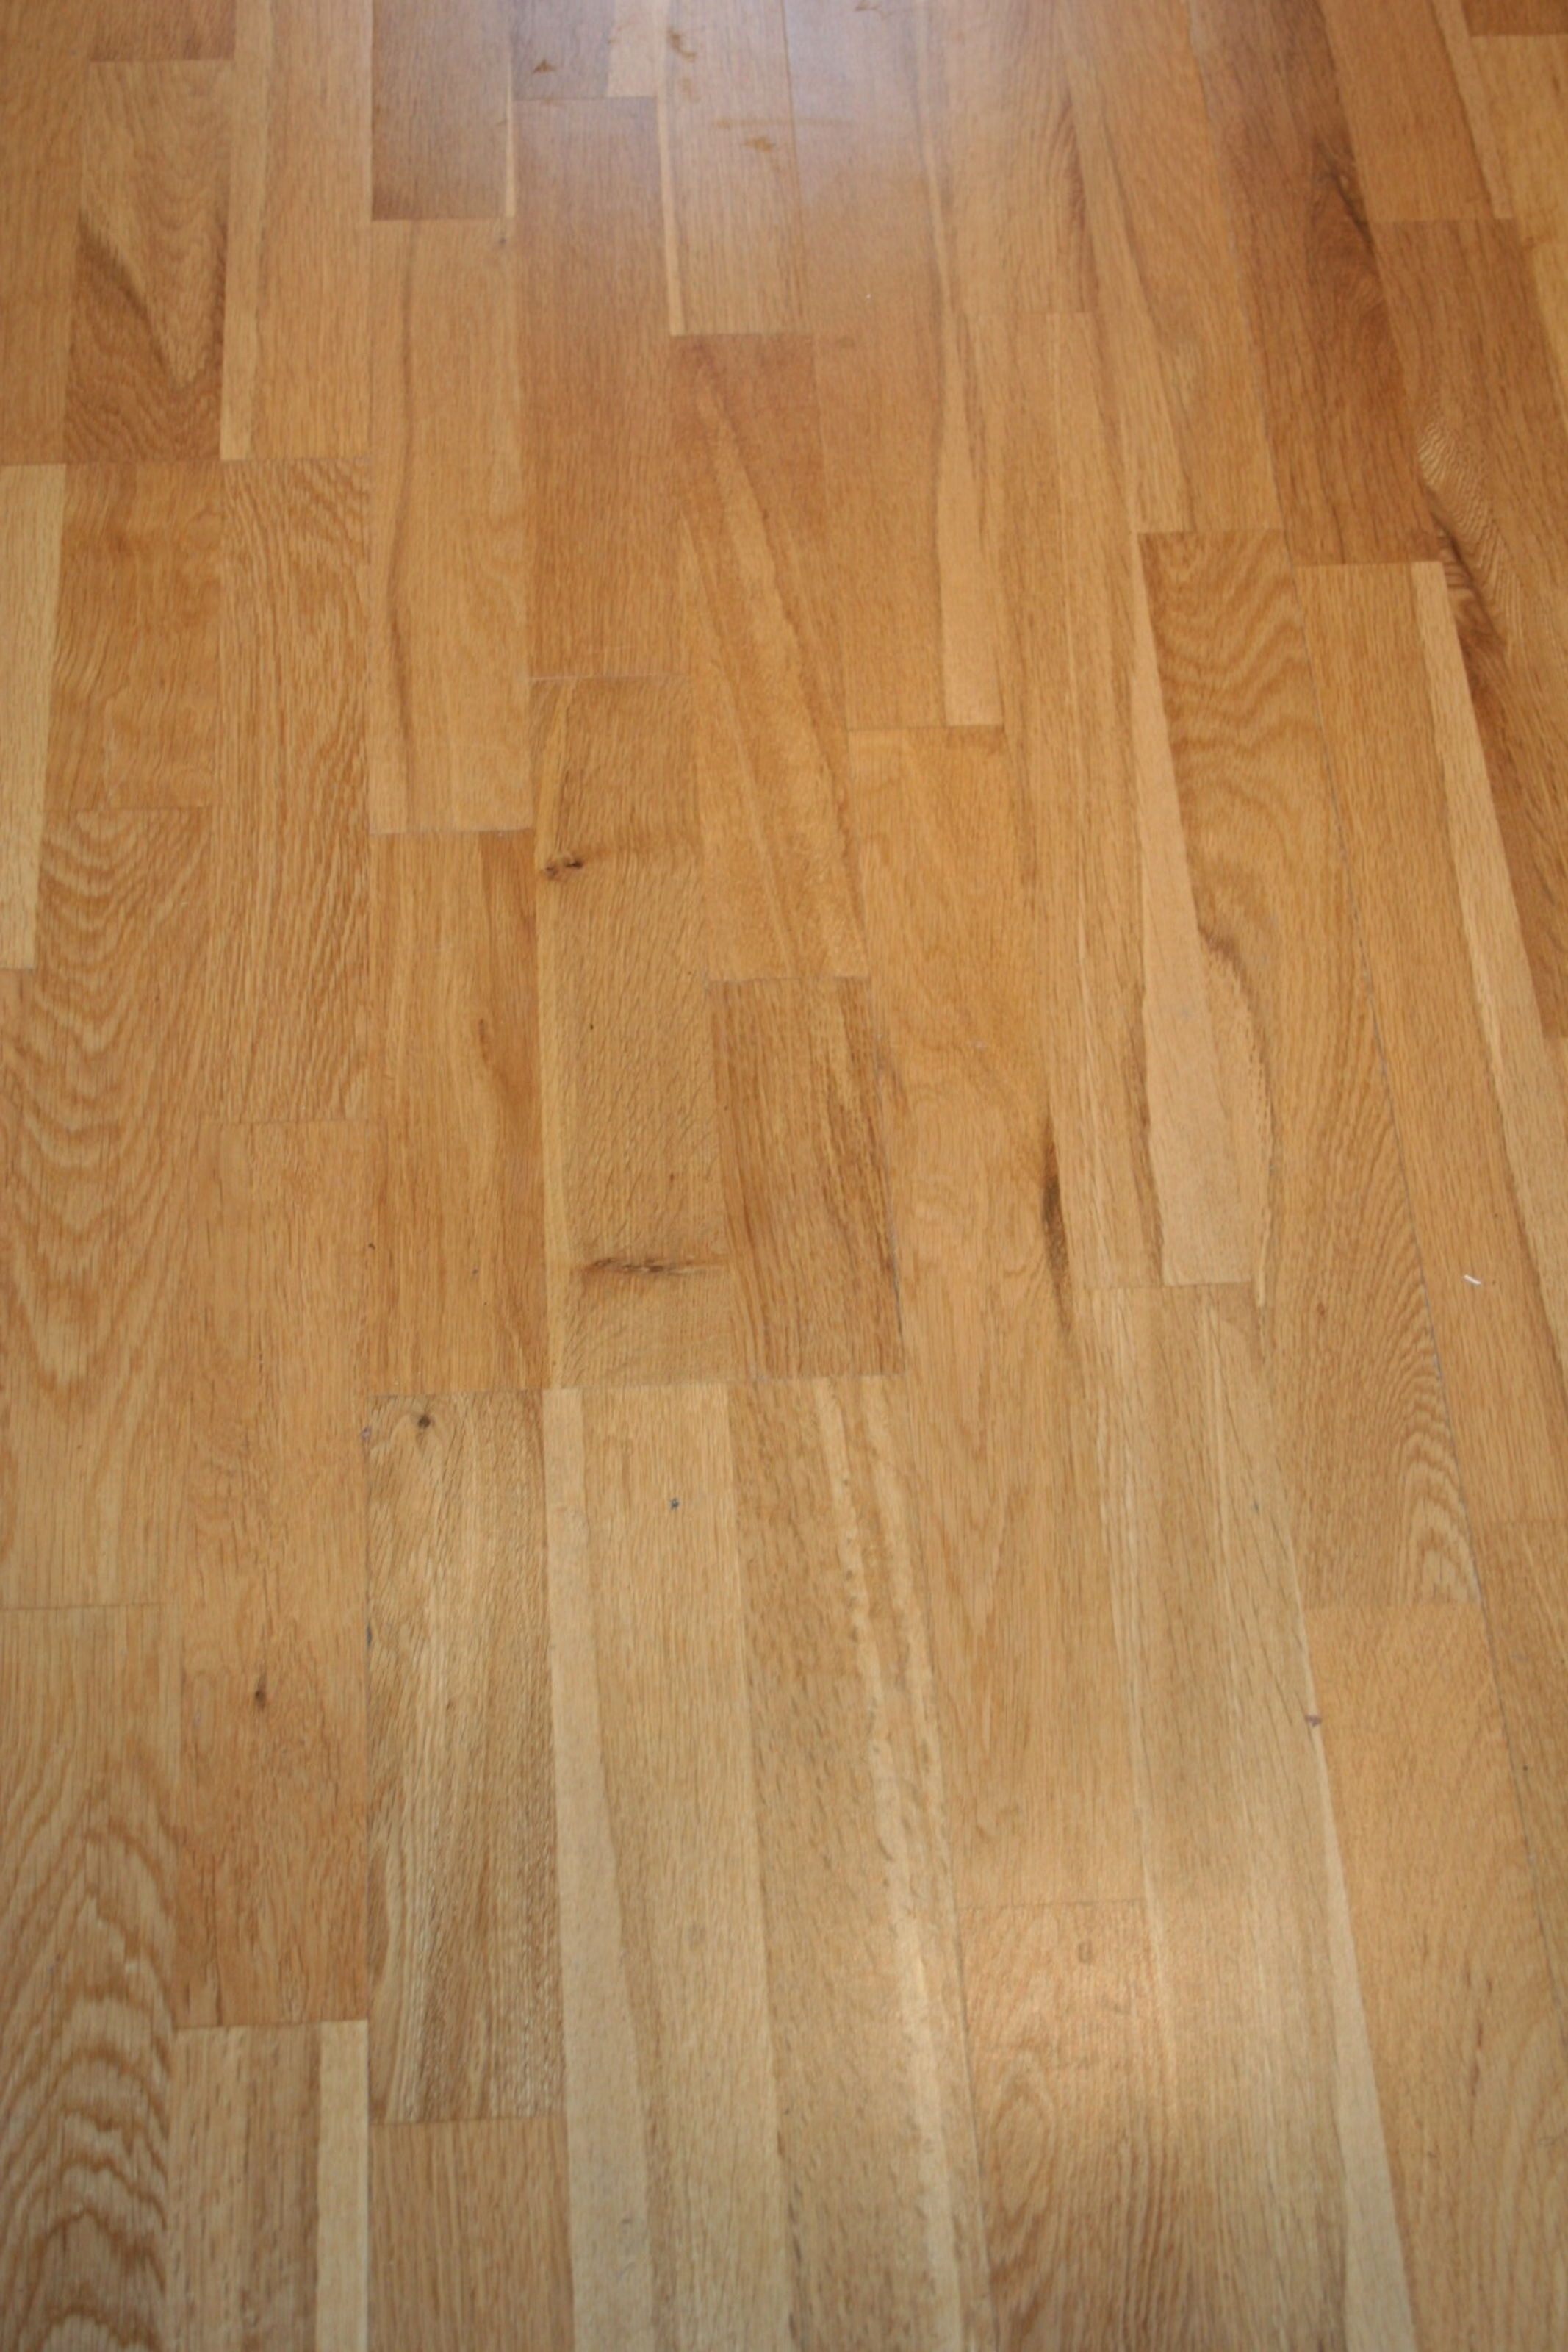 Real Oak T&G Engineered Floor; Image 1756.2